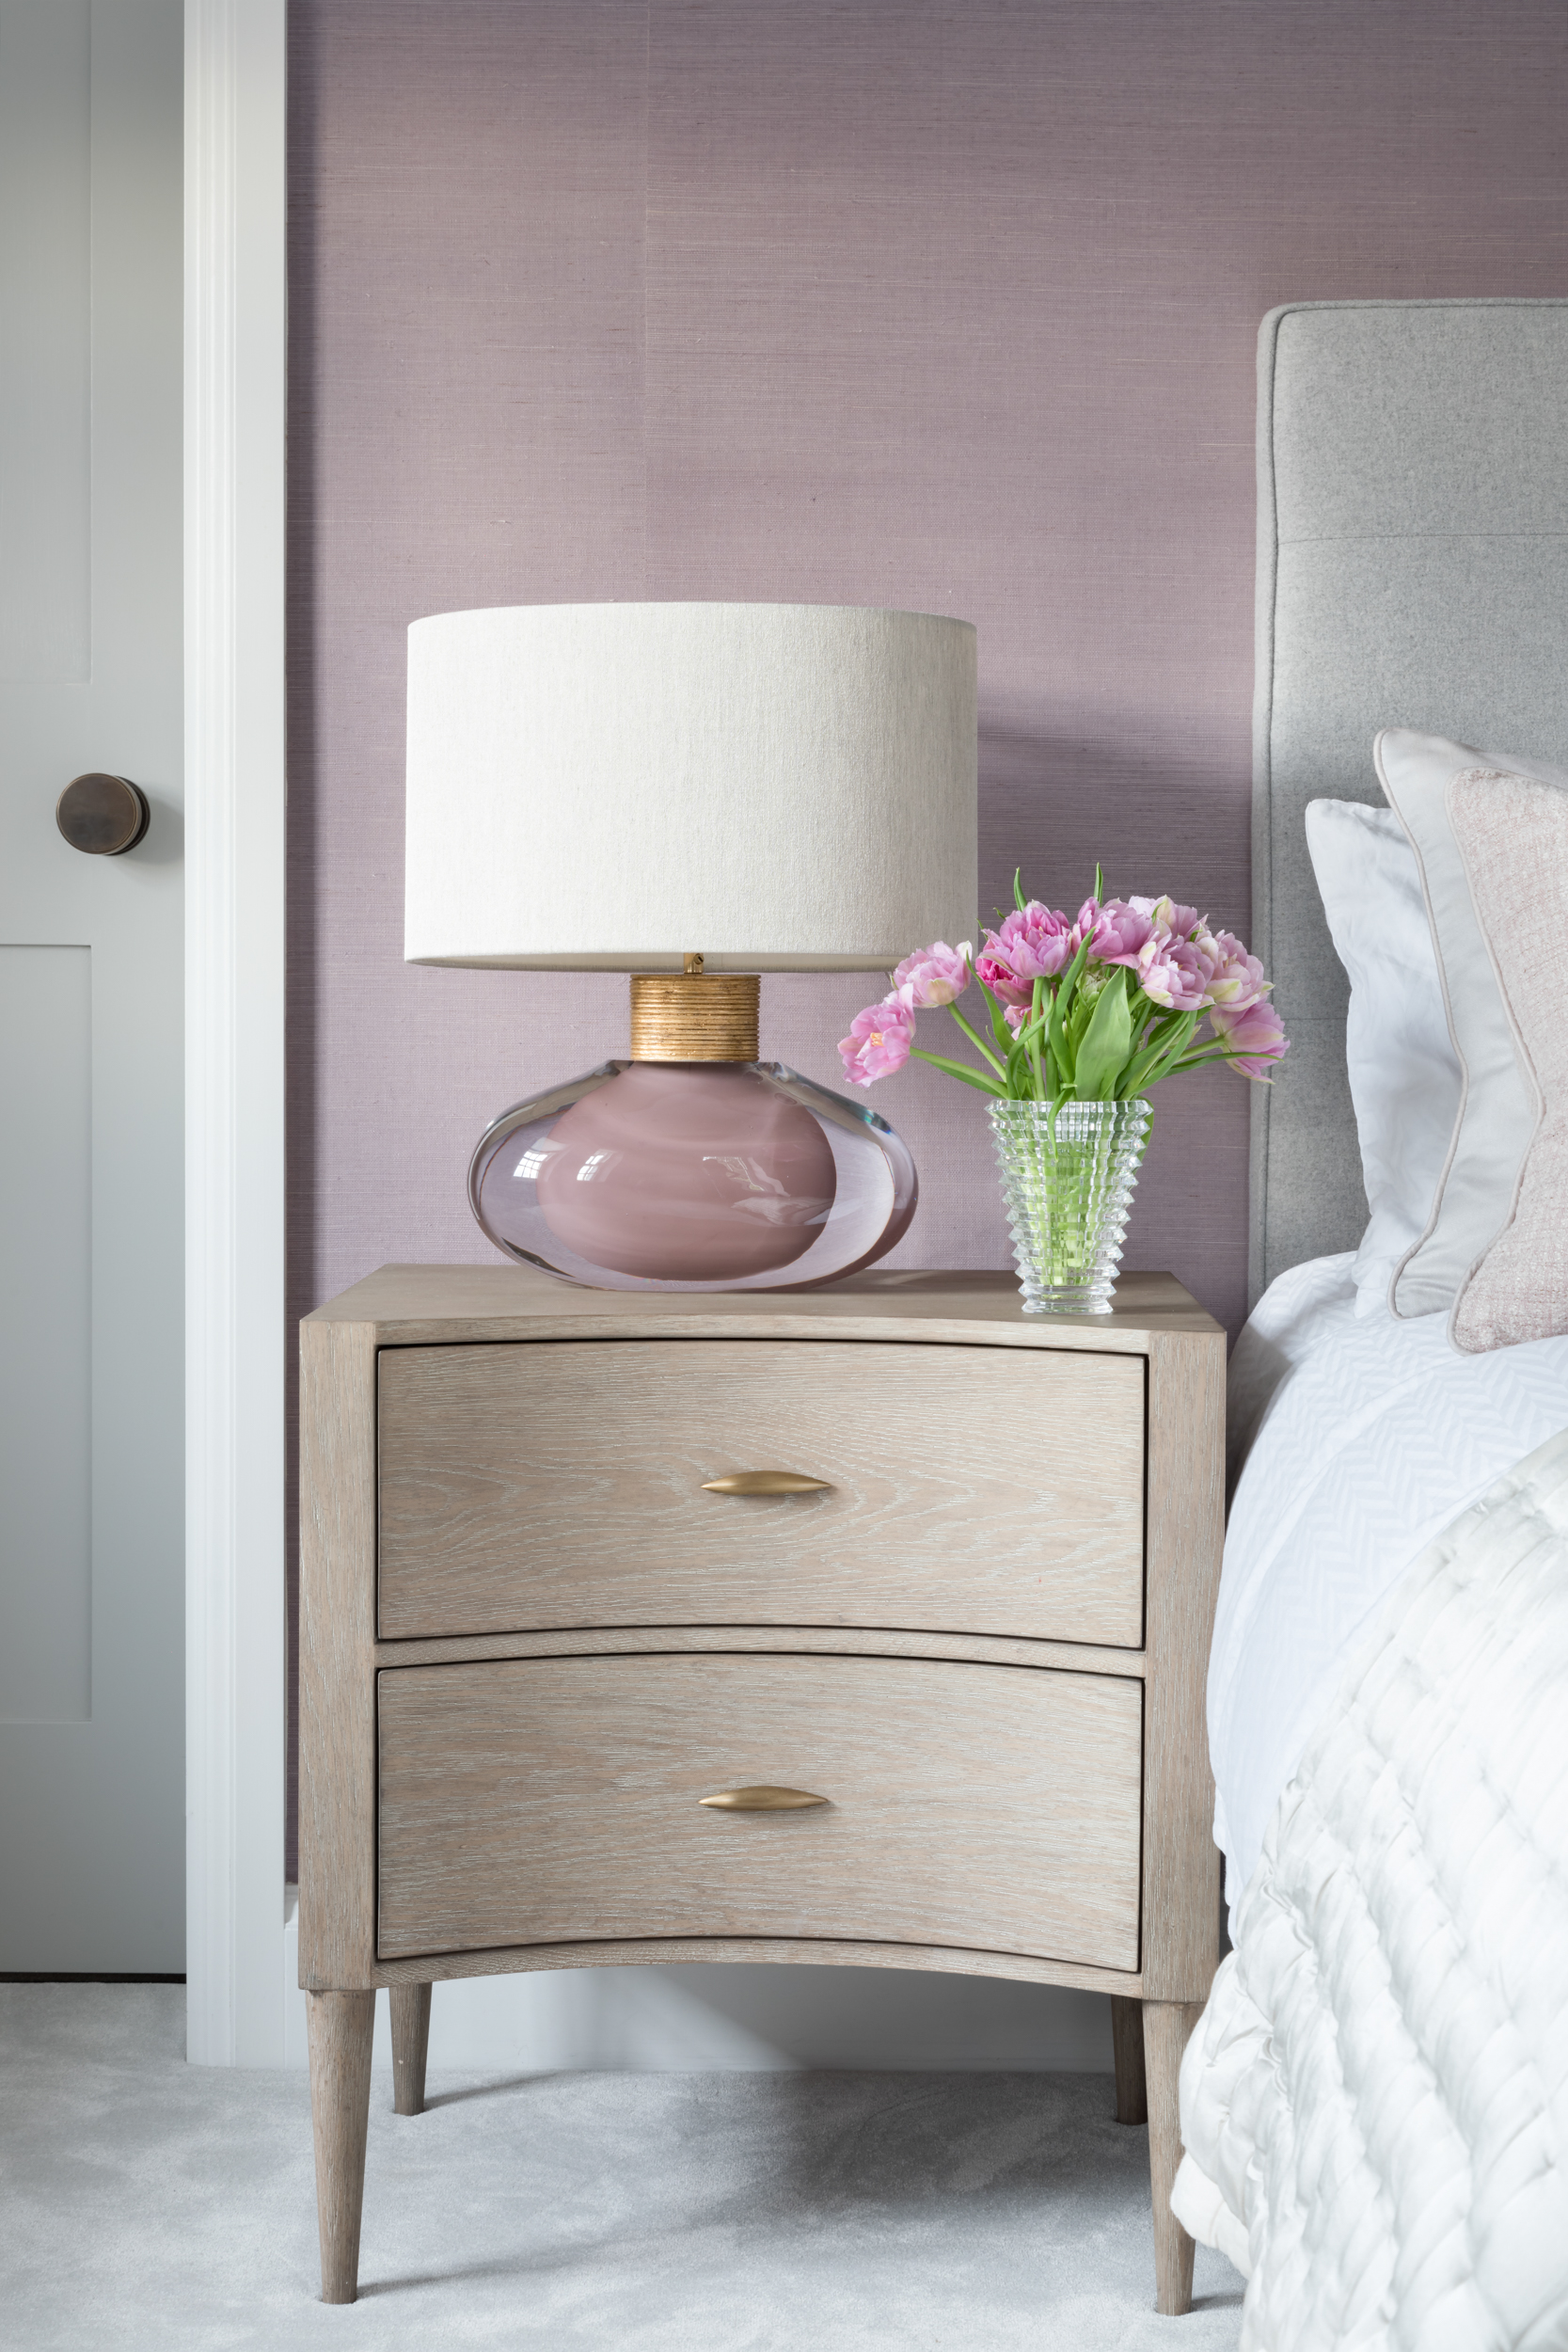 Paul Craig, Interior Photographer, Residential Photography, London, Bedroom, Bed and Side table